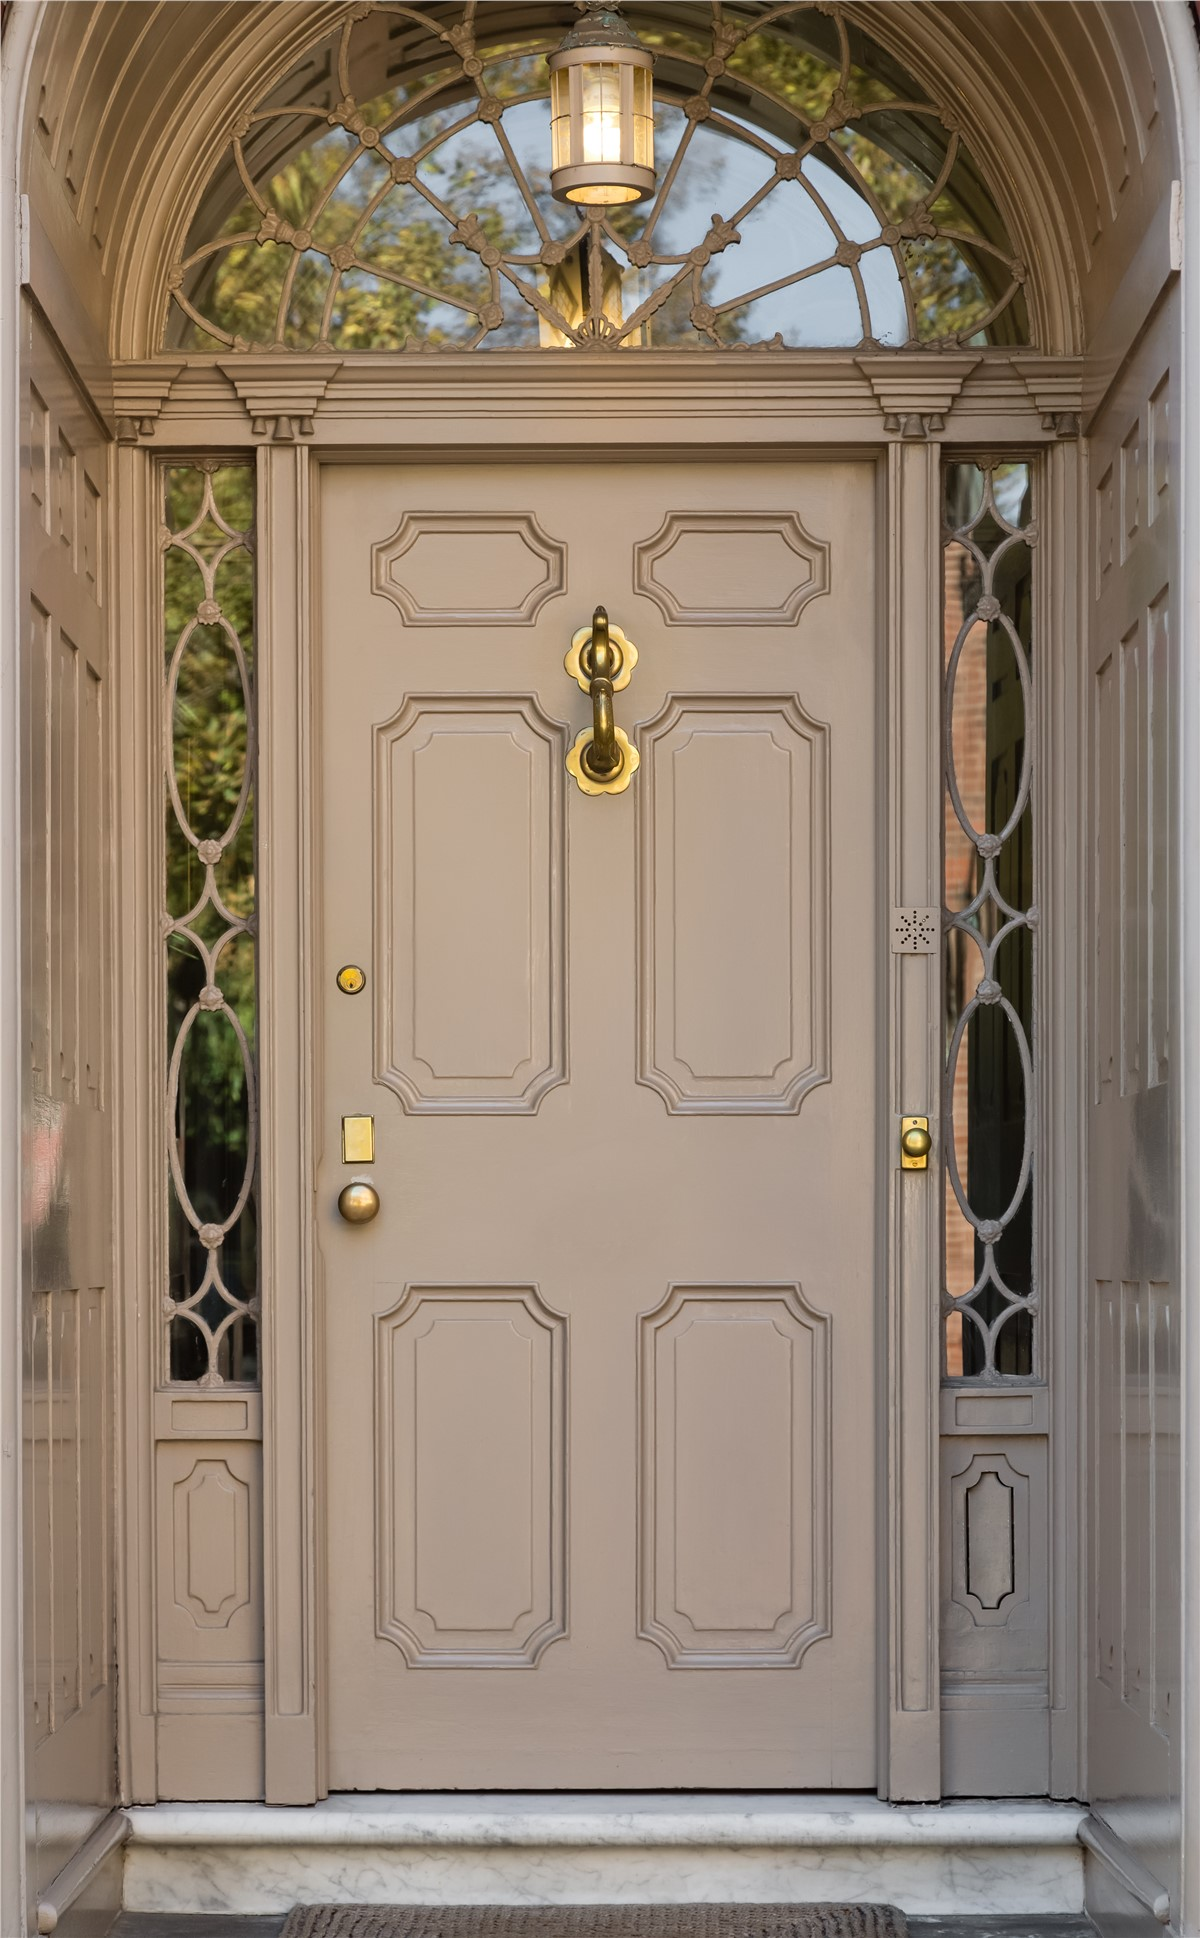 Kansas city steel entry doors steel kc entry doors alenco for Steel front entry doors